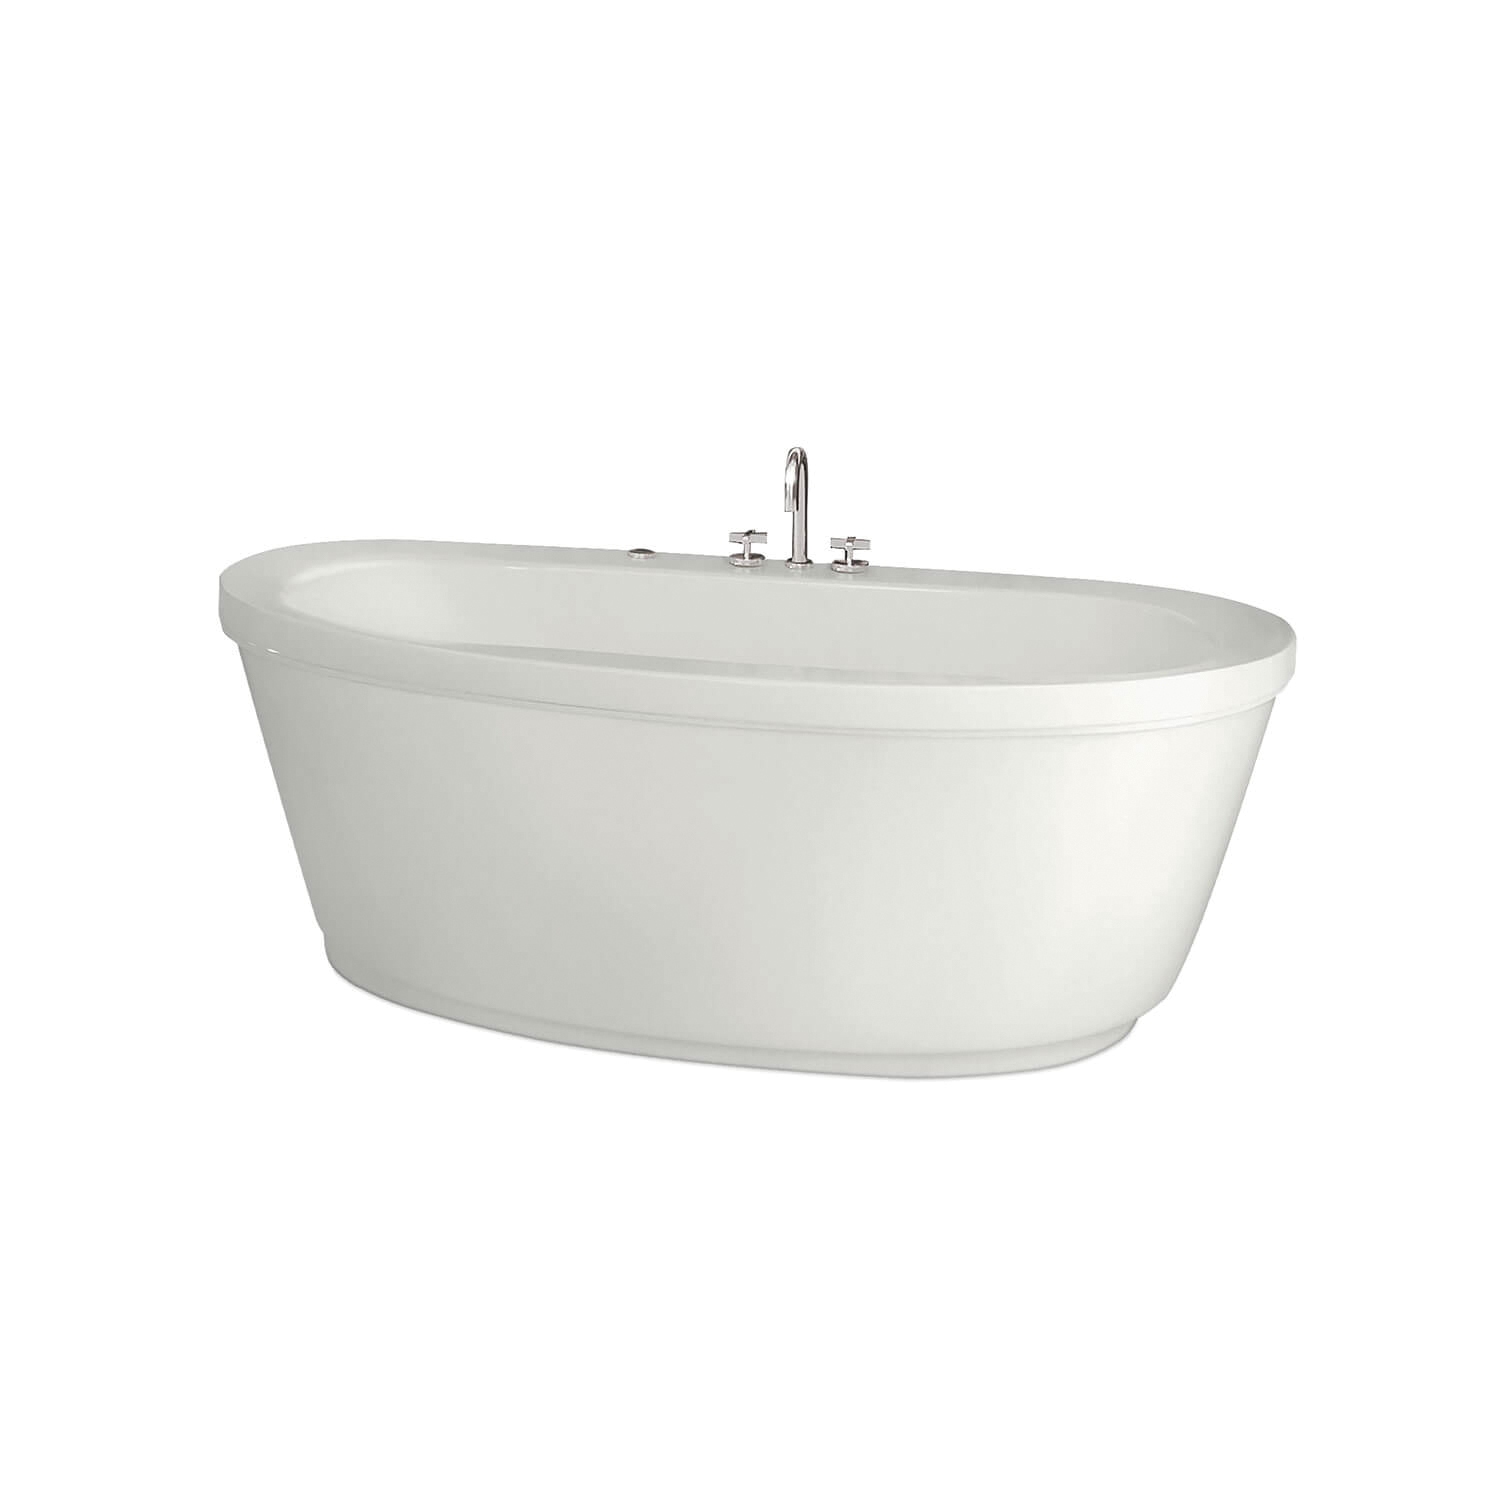 MAAX® 105359-000-001 Jazz® F 2-Piece Bathtub, Chromatherapy, 66 in L x 36 in W, Center Drain, White